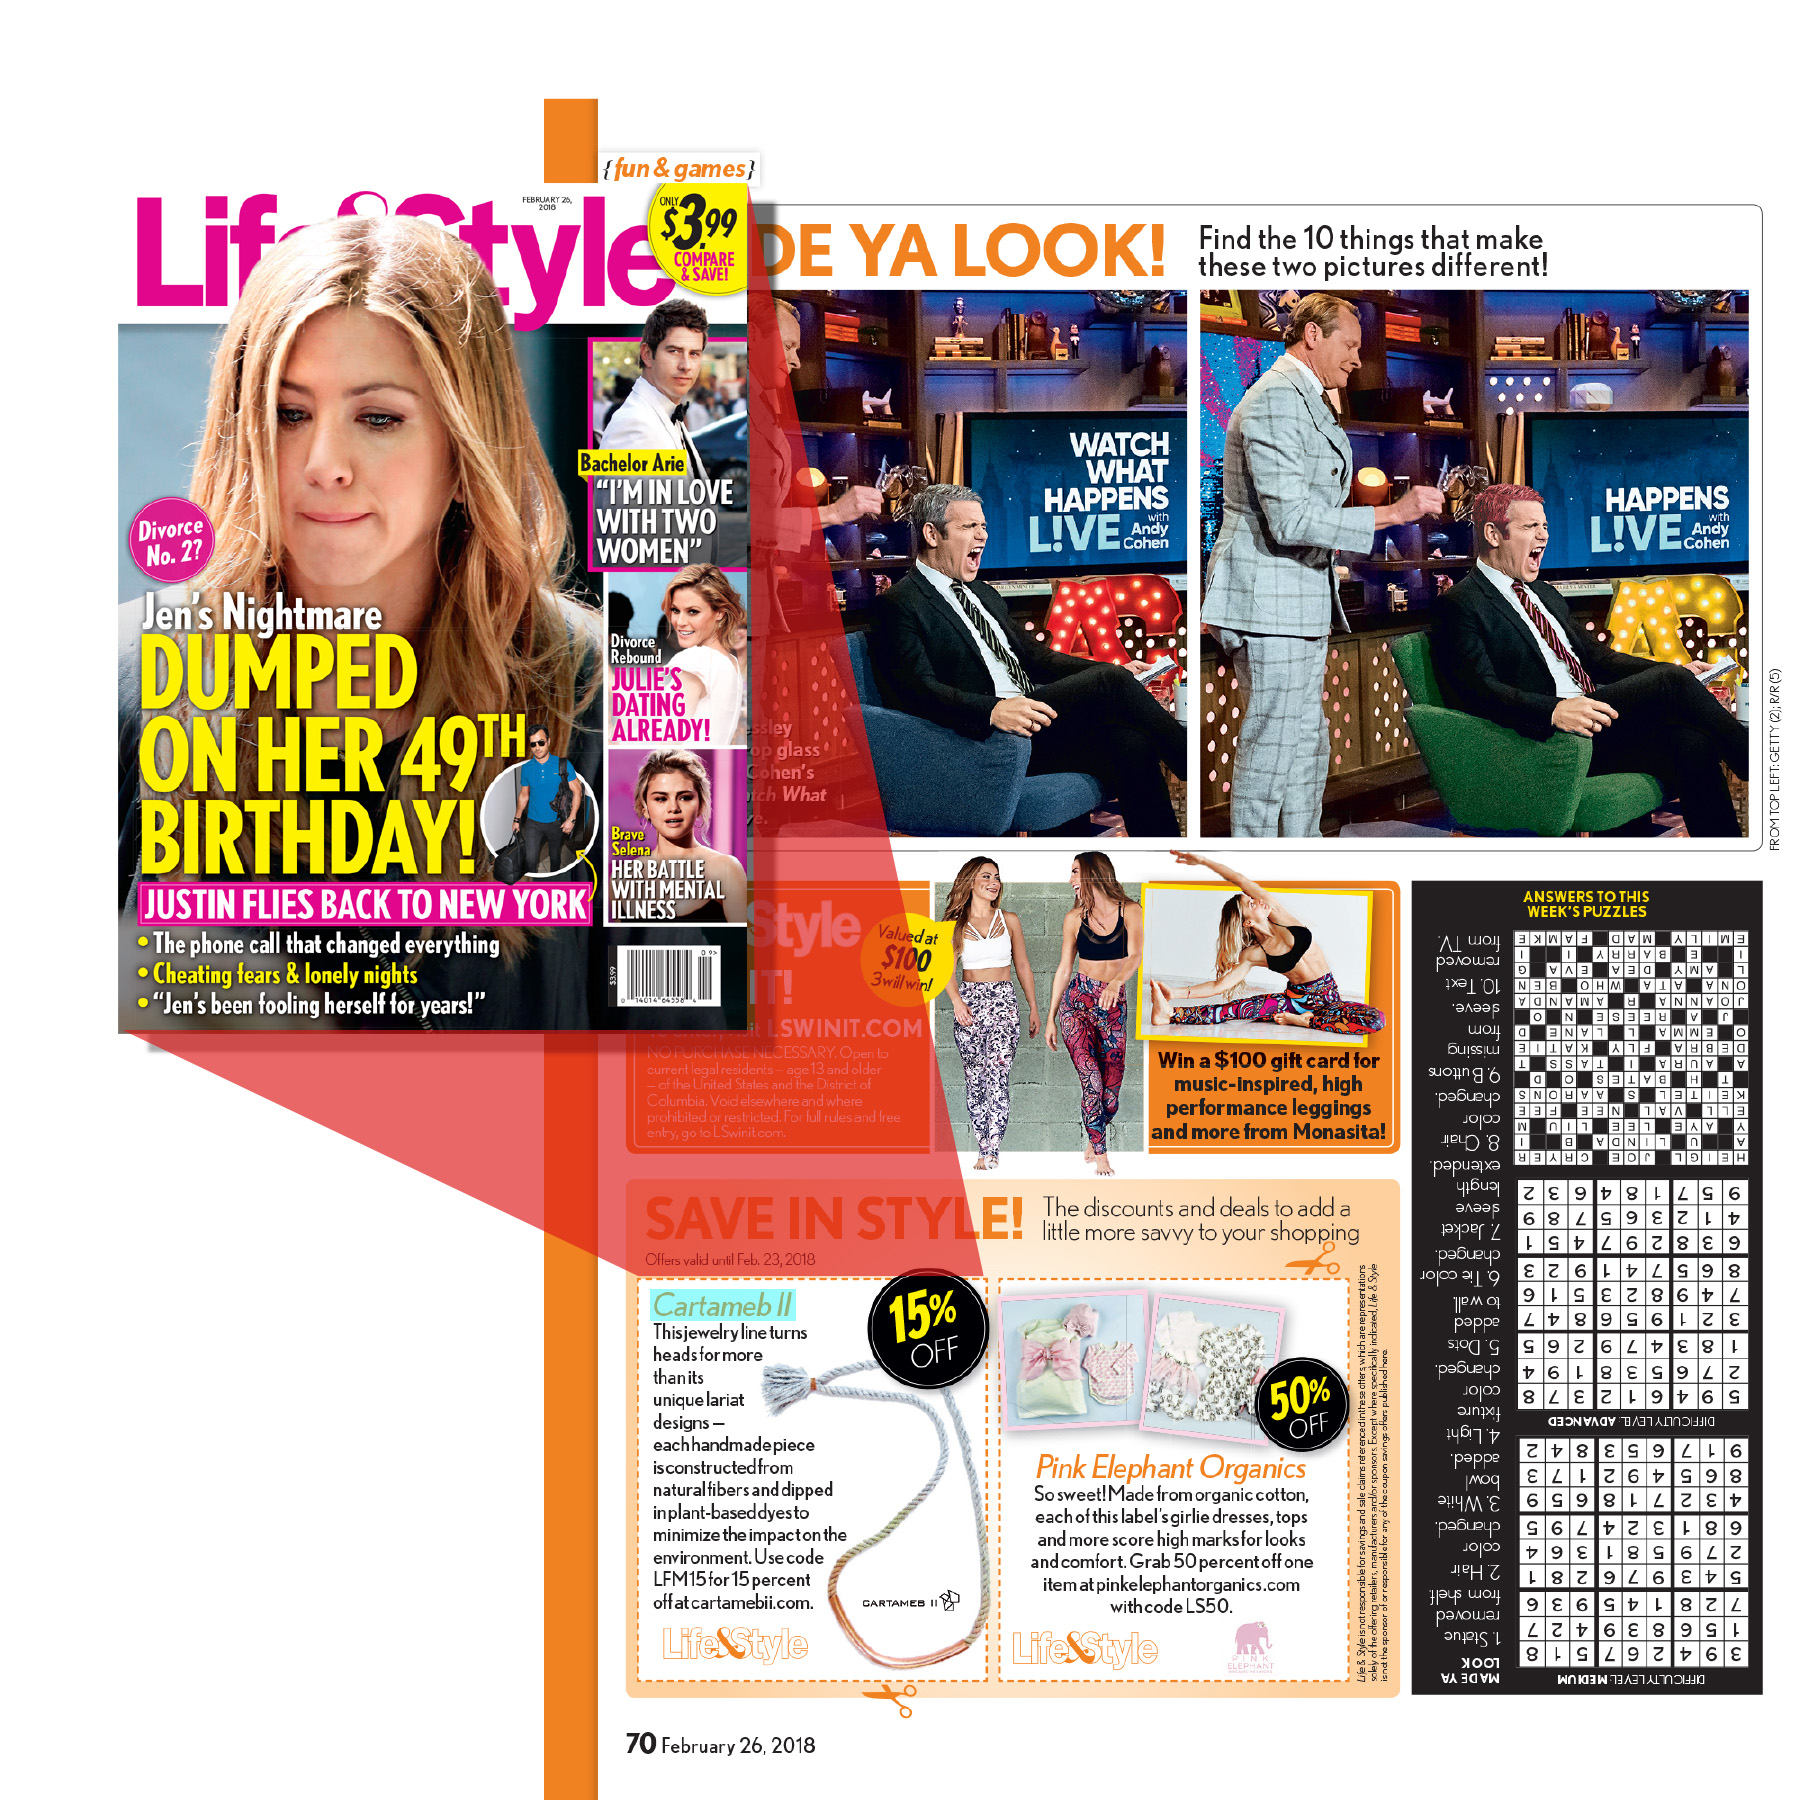 Life&Style Magazine   Savvy Shopping - Thanks to @ChicExecs Marketing featuring Smile Curve Necklace